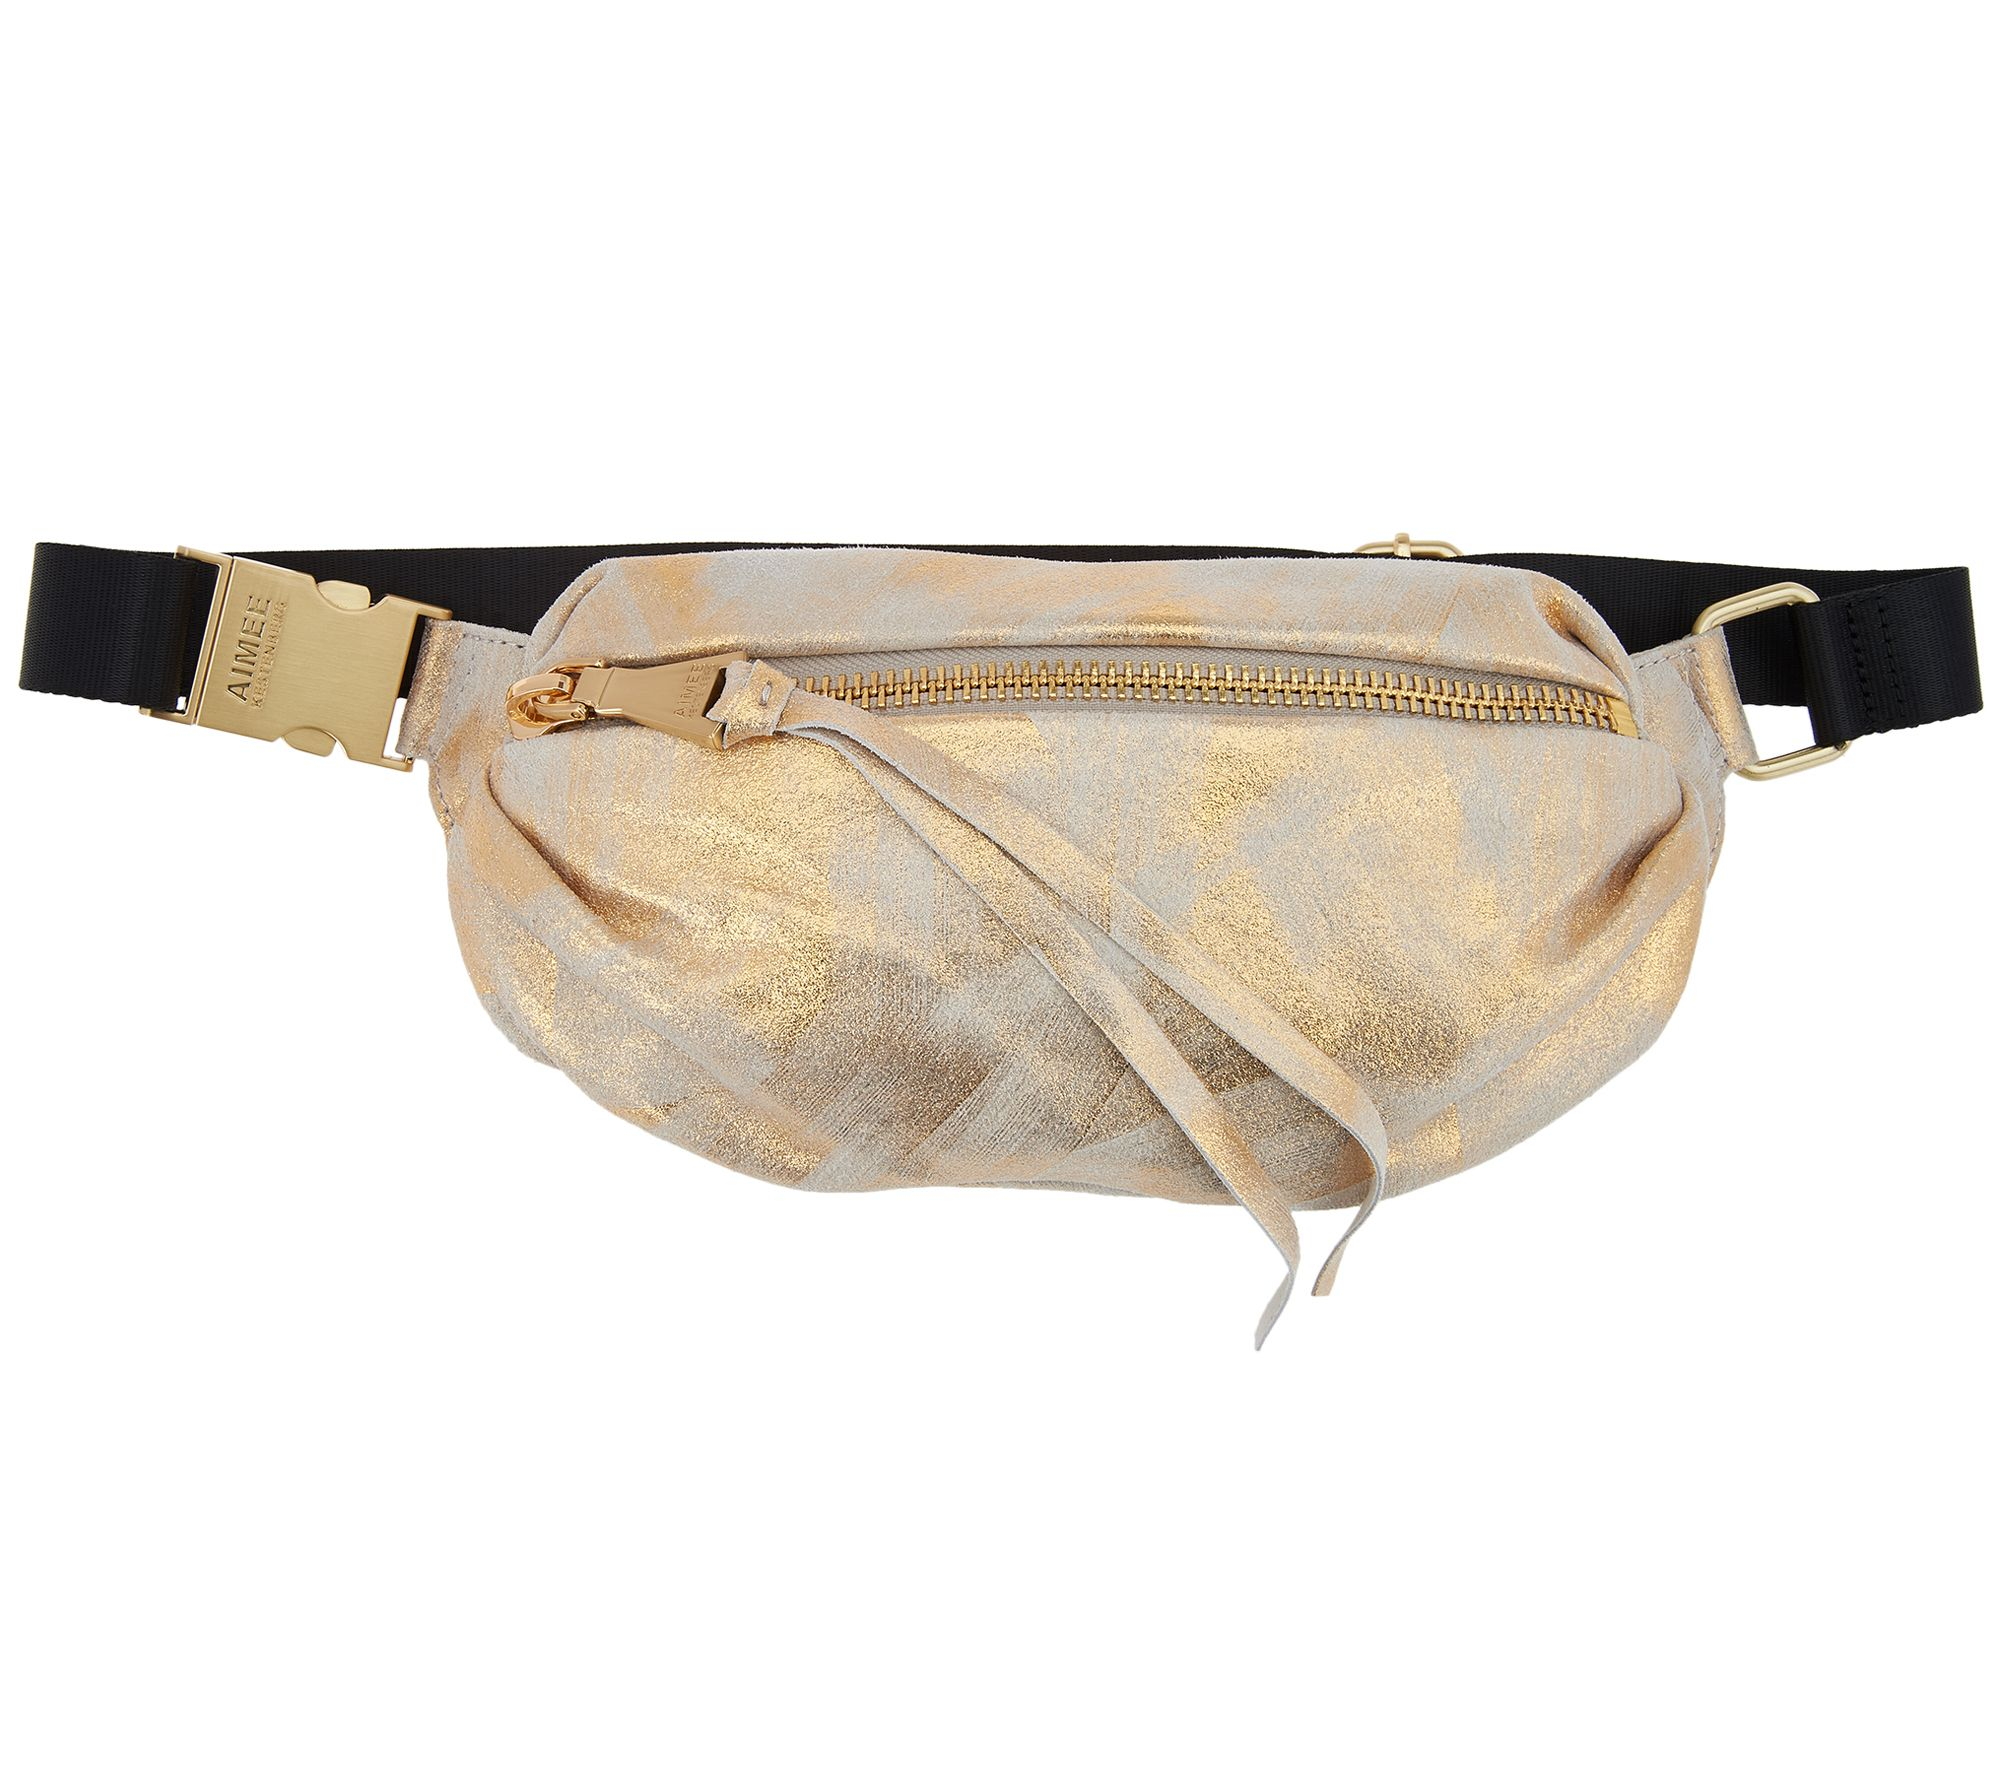 You Stole My Heart But Ill Let You Keep It Waist Pack Fanny Pack Adjustable